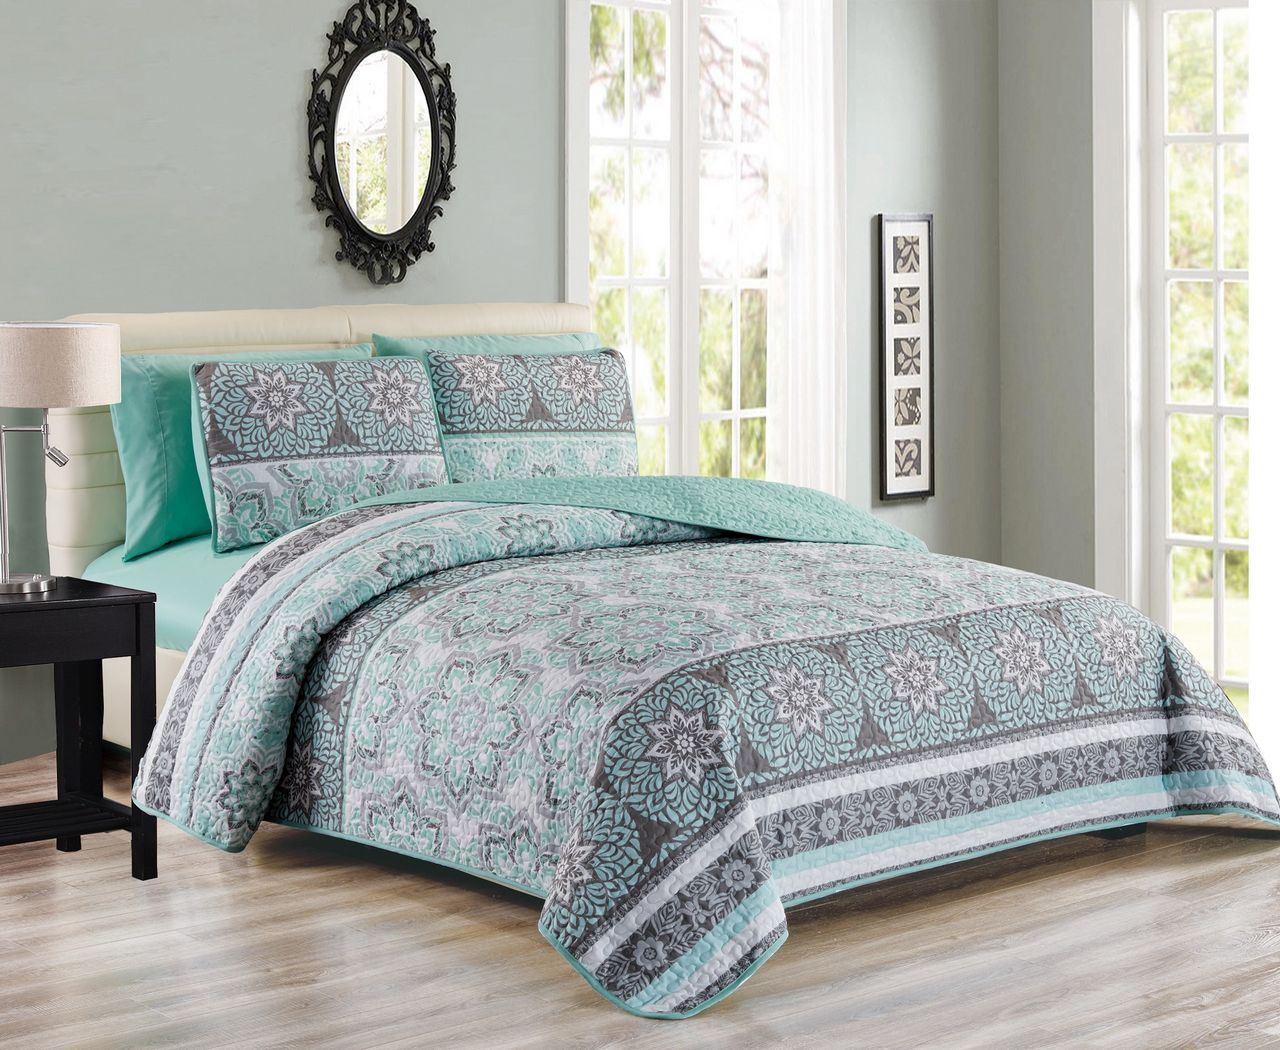 6 Piece Medallion Floral Patchwork Reversible Bedspread Quilt with SHeet Set by